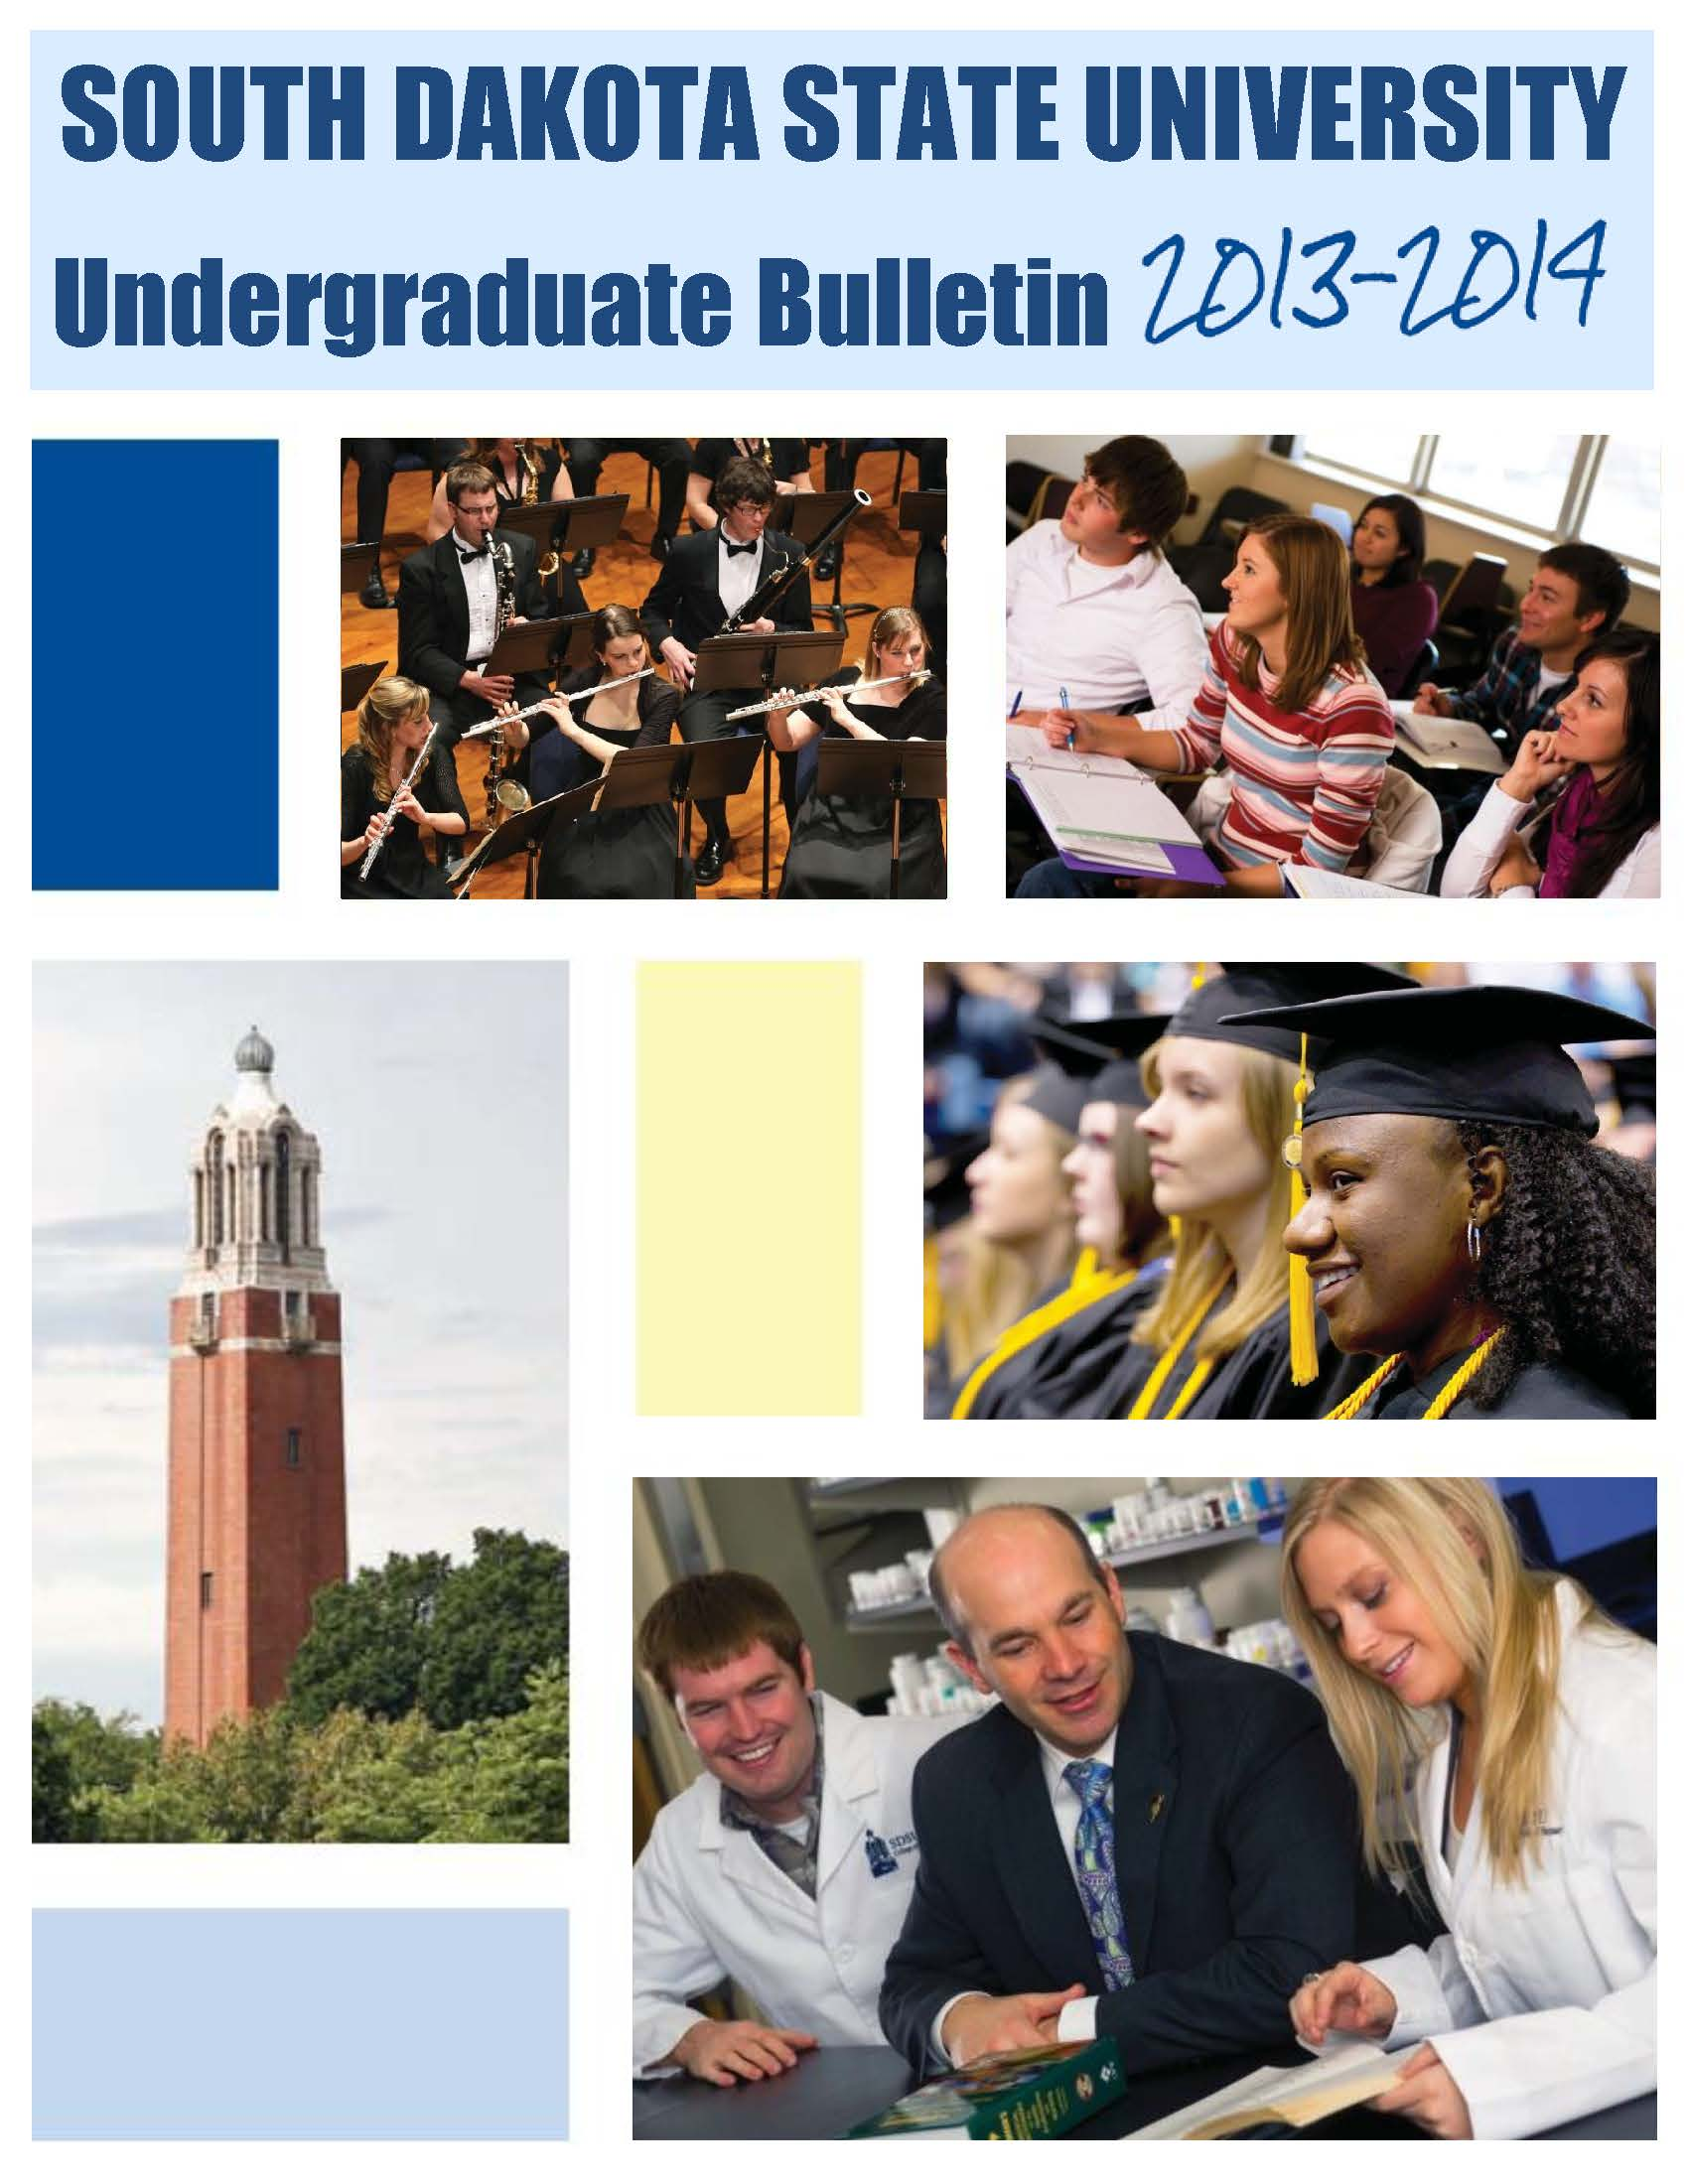 2013-2014 Undergraduate Catalog cover